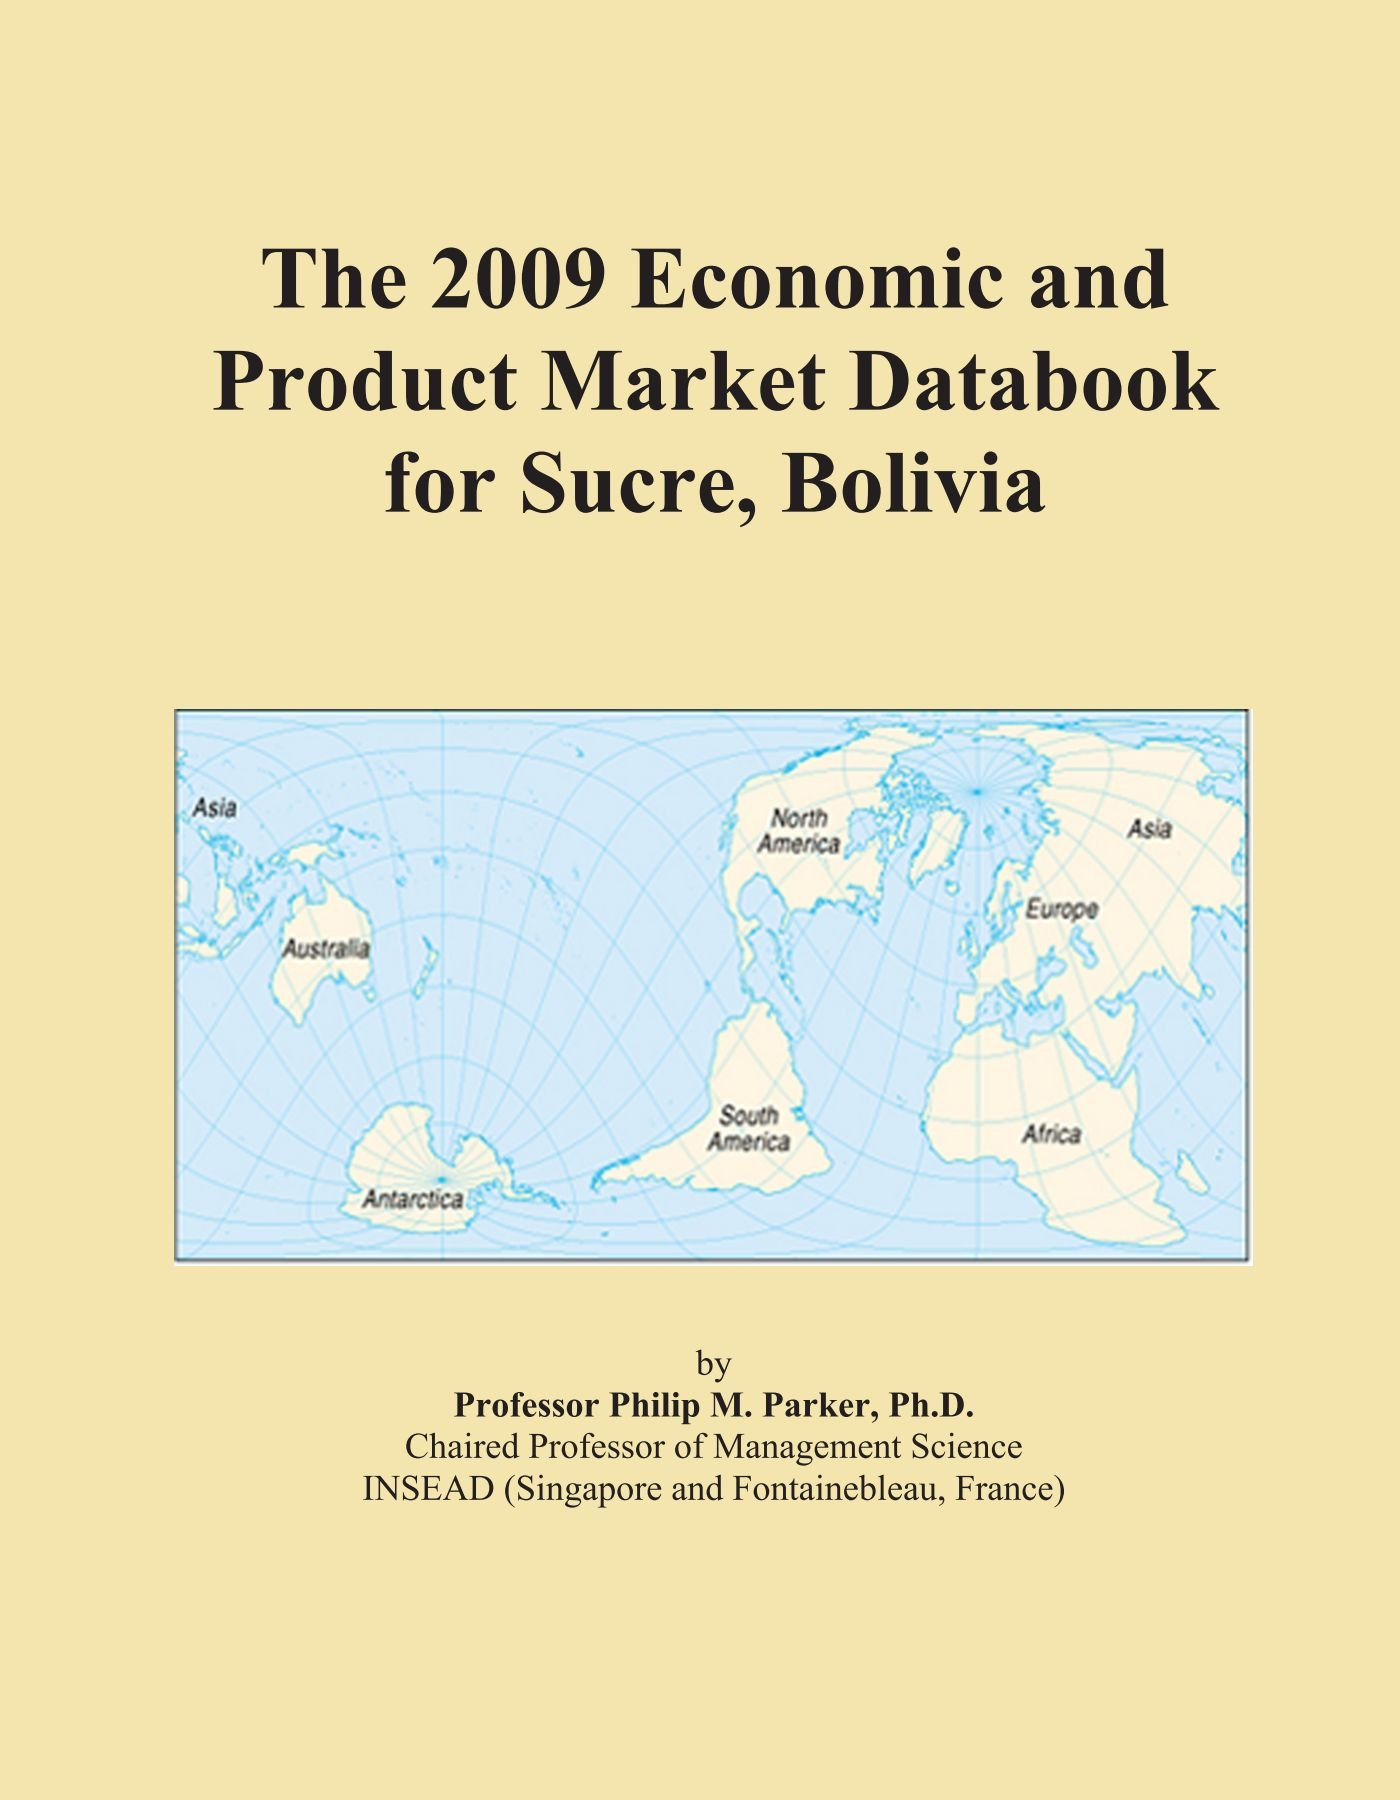 Download The 2009 Economic and Product Market Databook for Sucre, Bolivia ebook